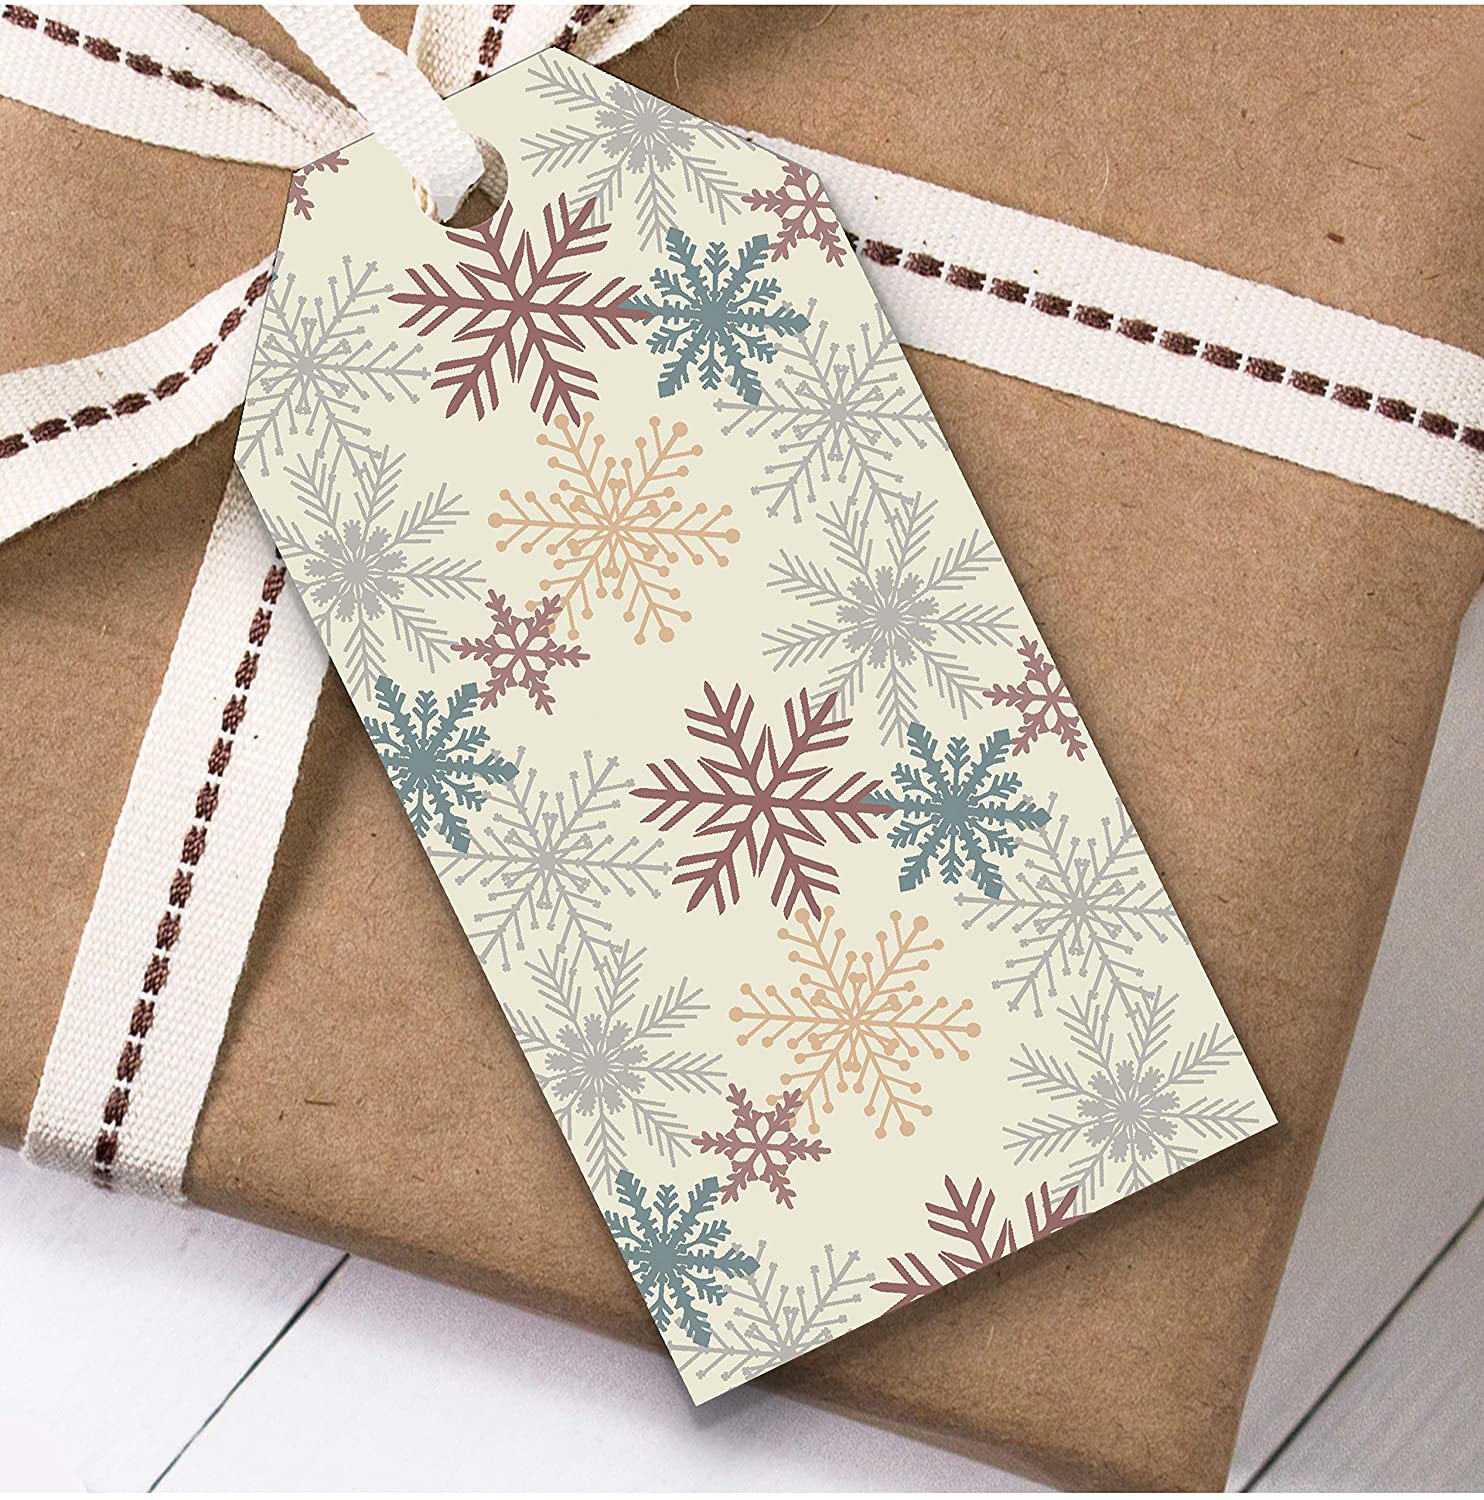 Cream Snowflakes Christmas Gift Tags (Present Favor Labels)